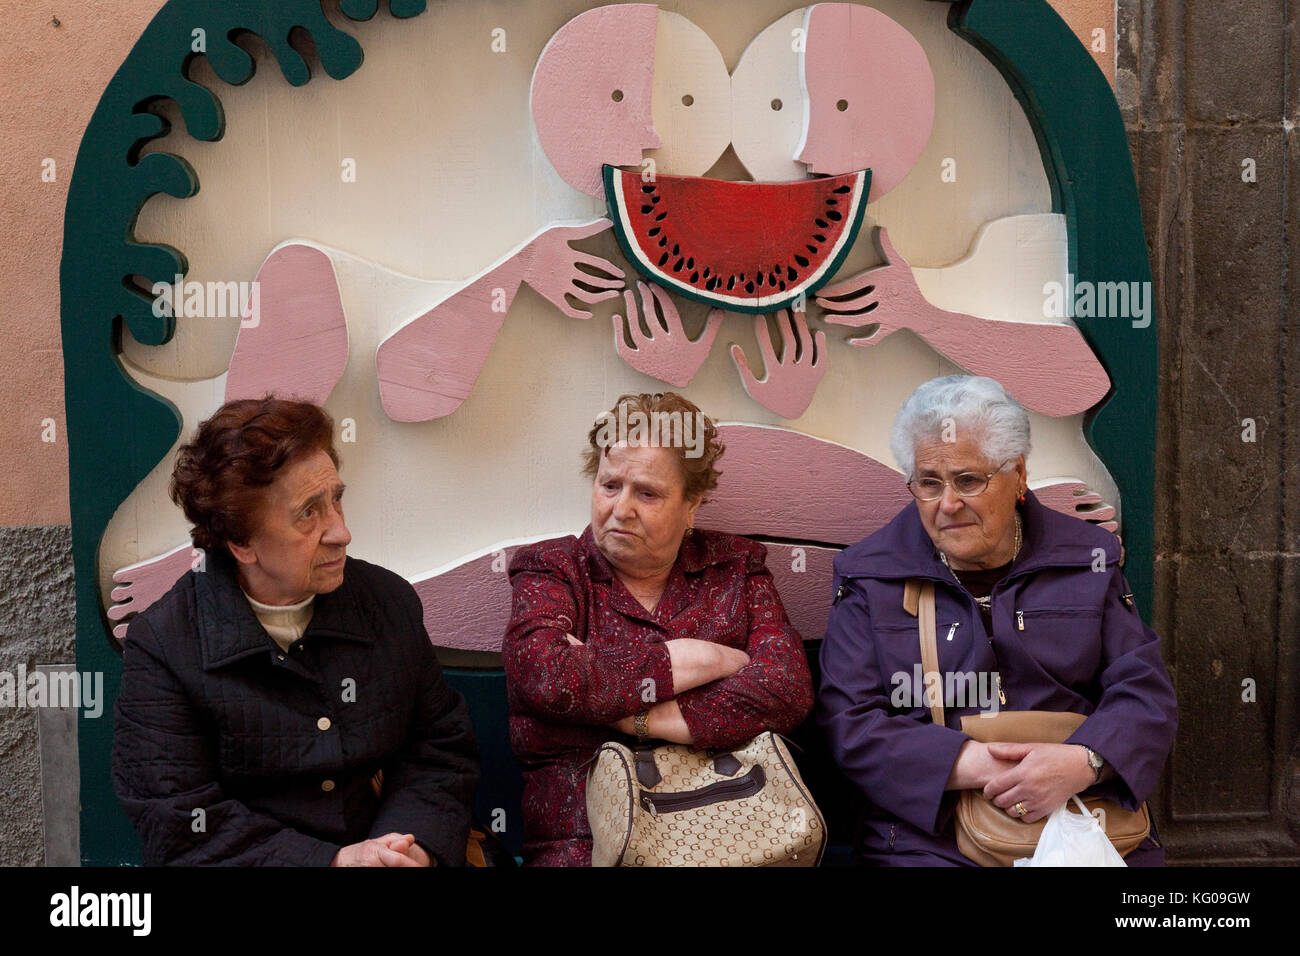 Elder residents of Orvieto, Italy pause to contemplate on a watermelon sculpture bench. - Stock Image